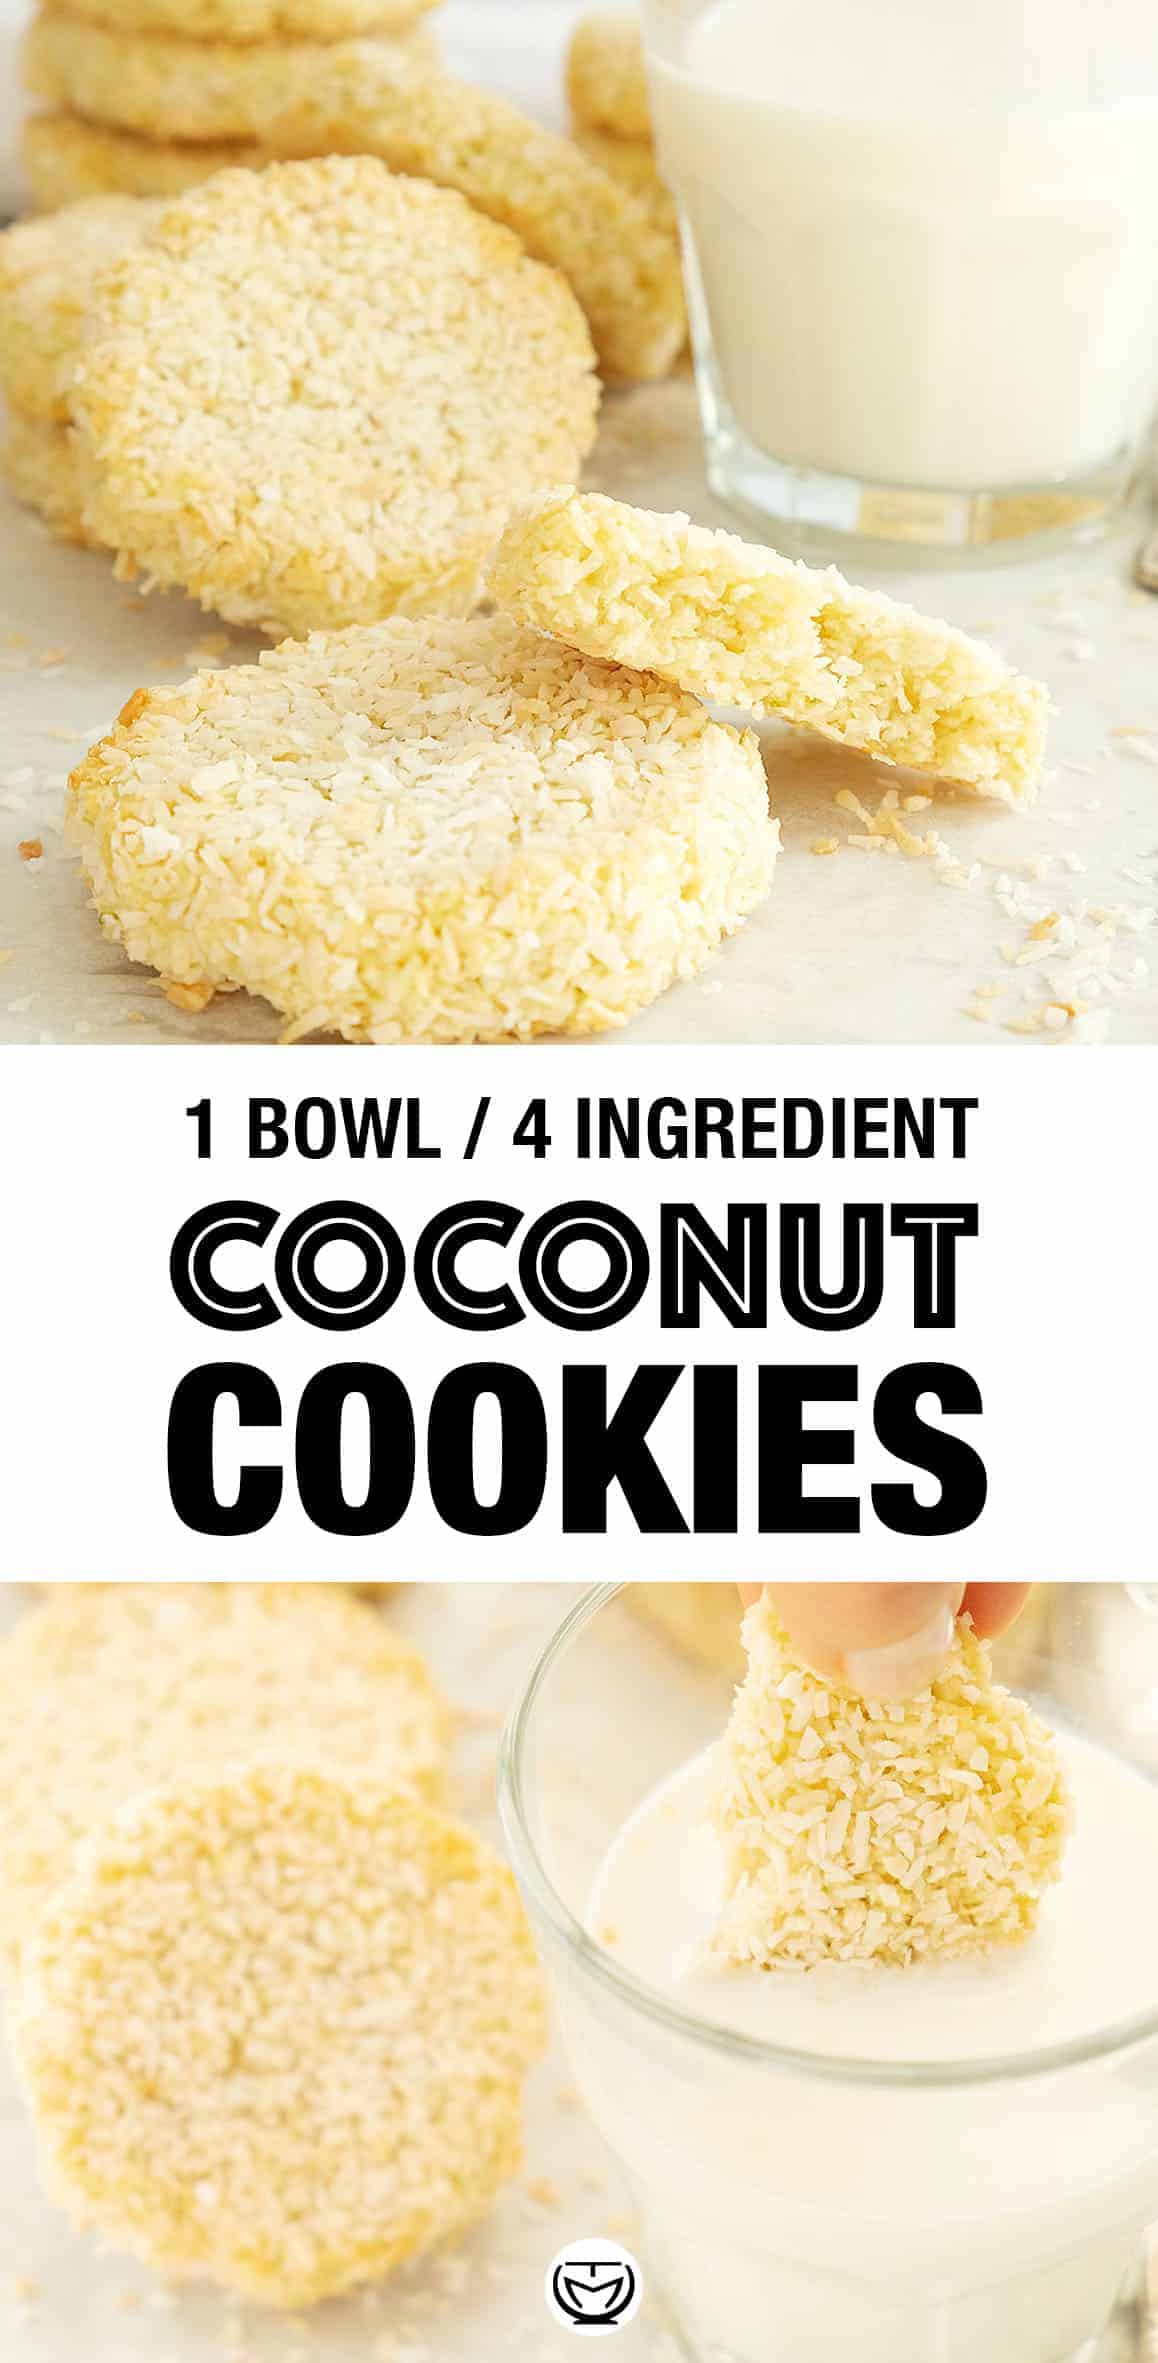 These are the coconut cookies of your dreams: chewy, tender and bursting with delicious coconut flavor! #cookierecipes #coconut #cookiesrecipeeasy